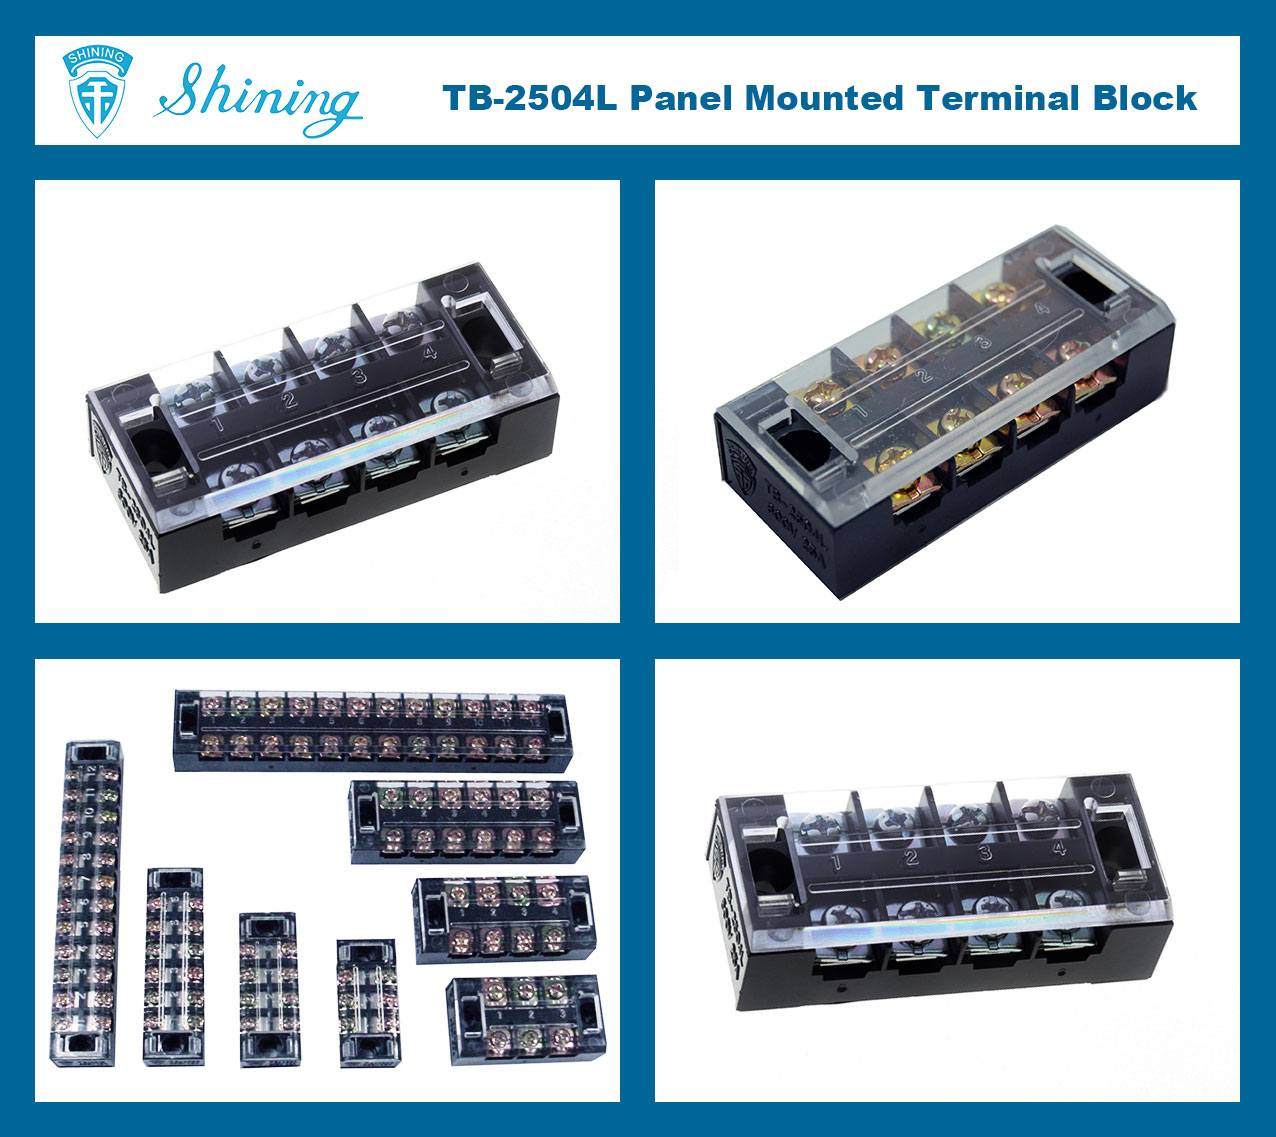 TB-2504L Panel Mounted Fixed Barrier 25A 4 Pole Terminal Block